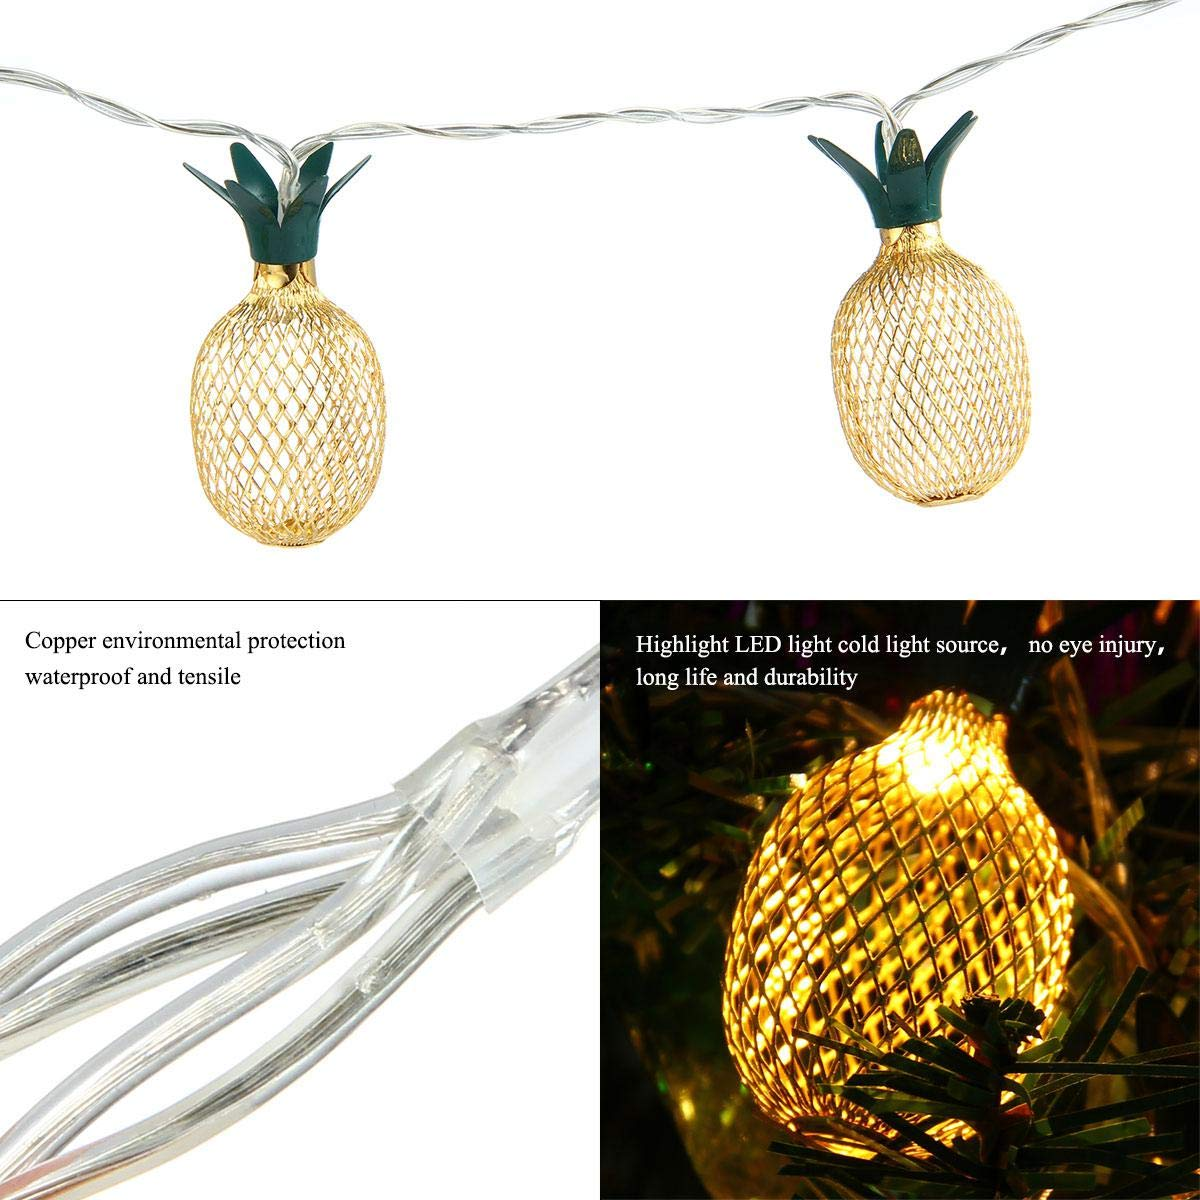 Pineapple String Lights, 200in/5m 40 LED Bulbs WaterproofBattery OperatedLantern String Lights with Battery Box Fairy Lights for Wedding Garden Festival Party Halloween Christmas Indoor & Outdoor by Umiwe (Image #2)